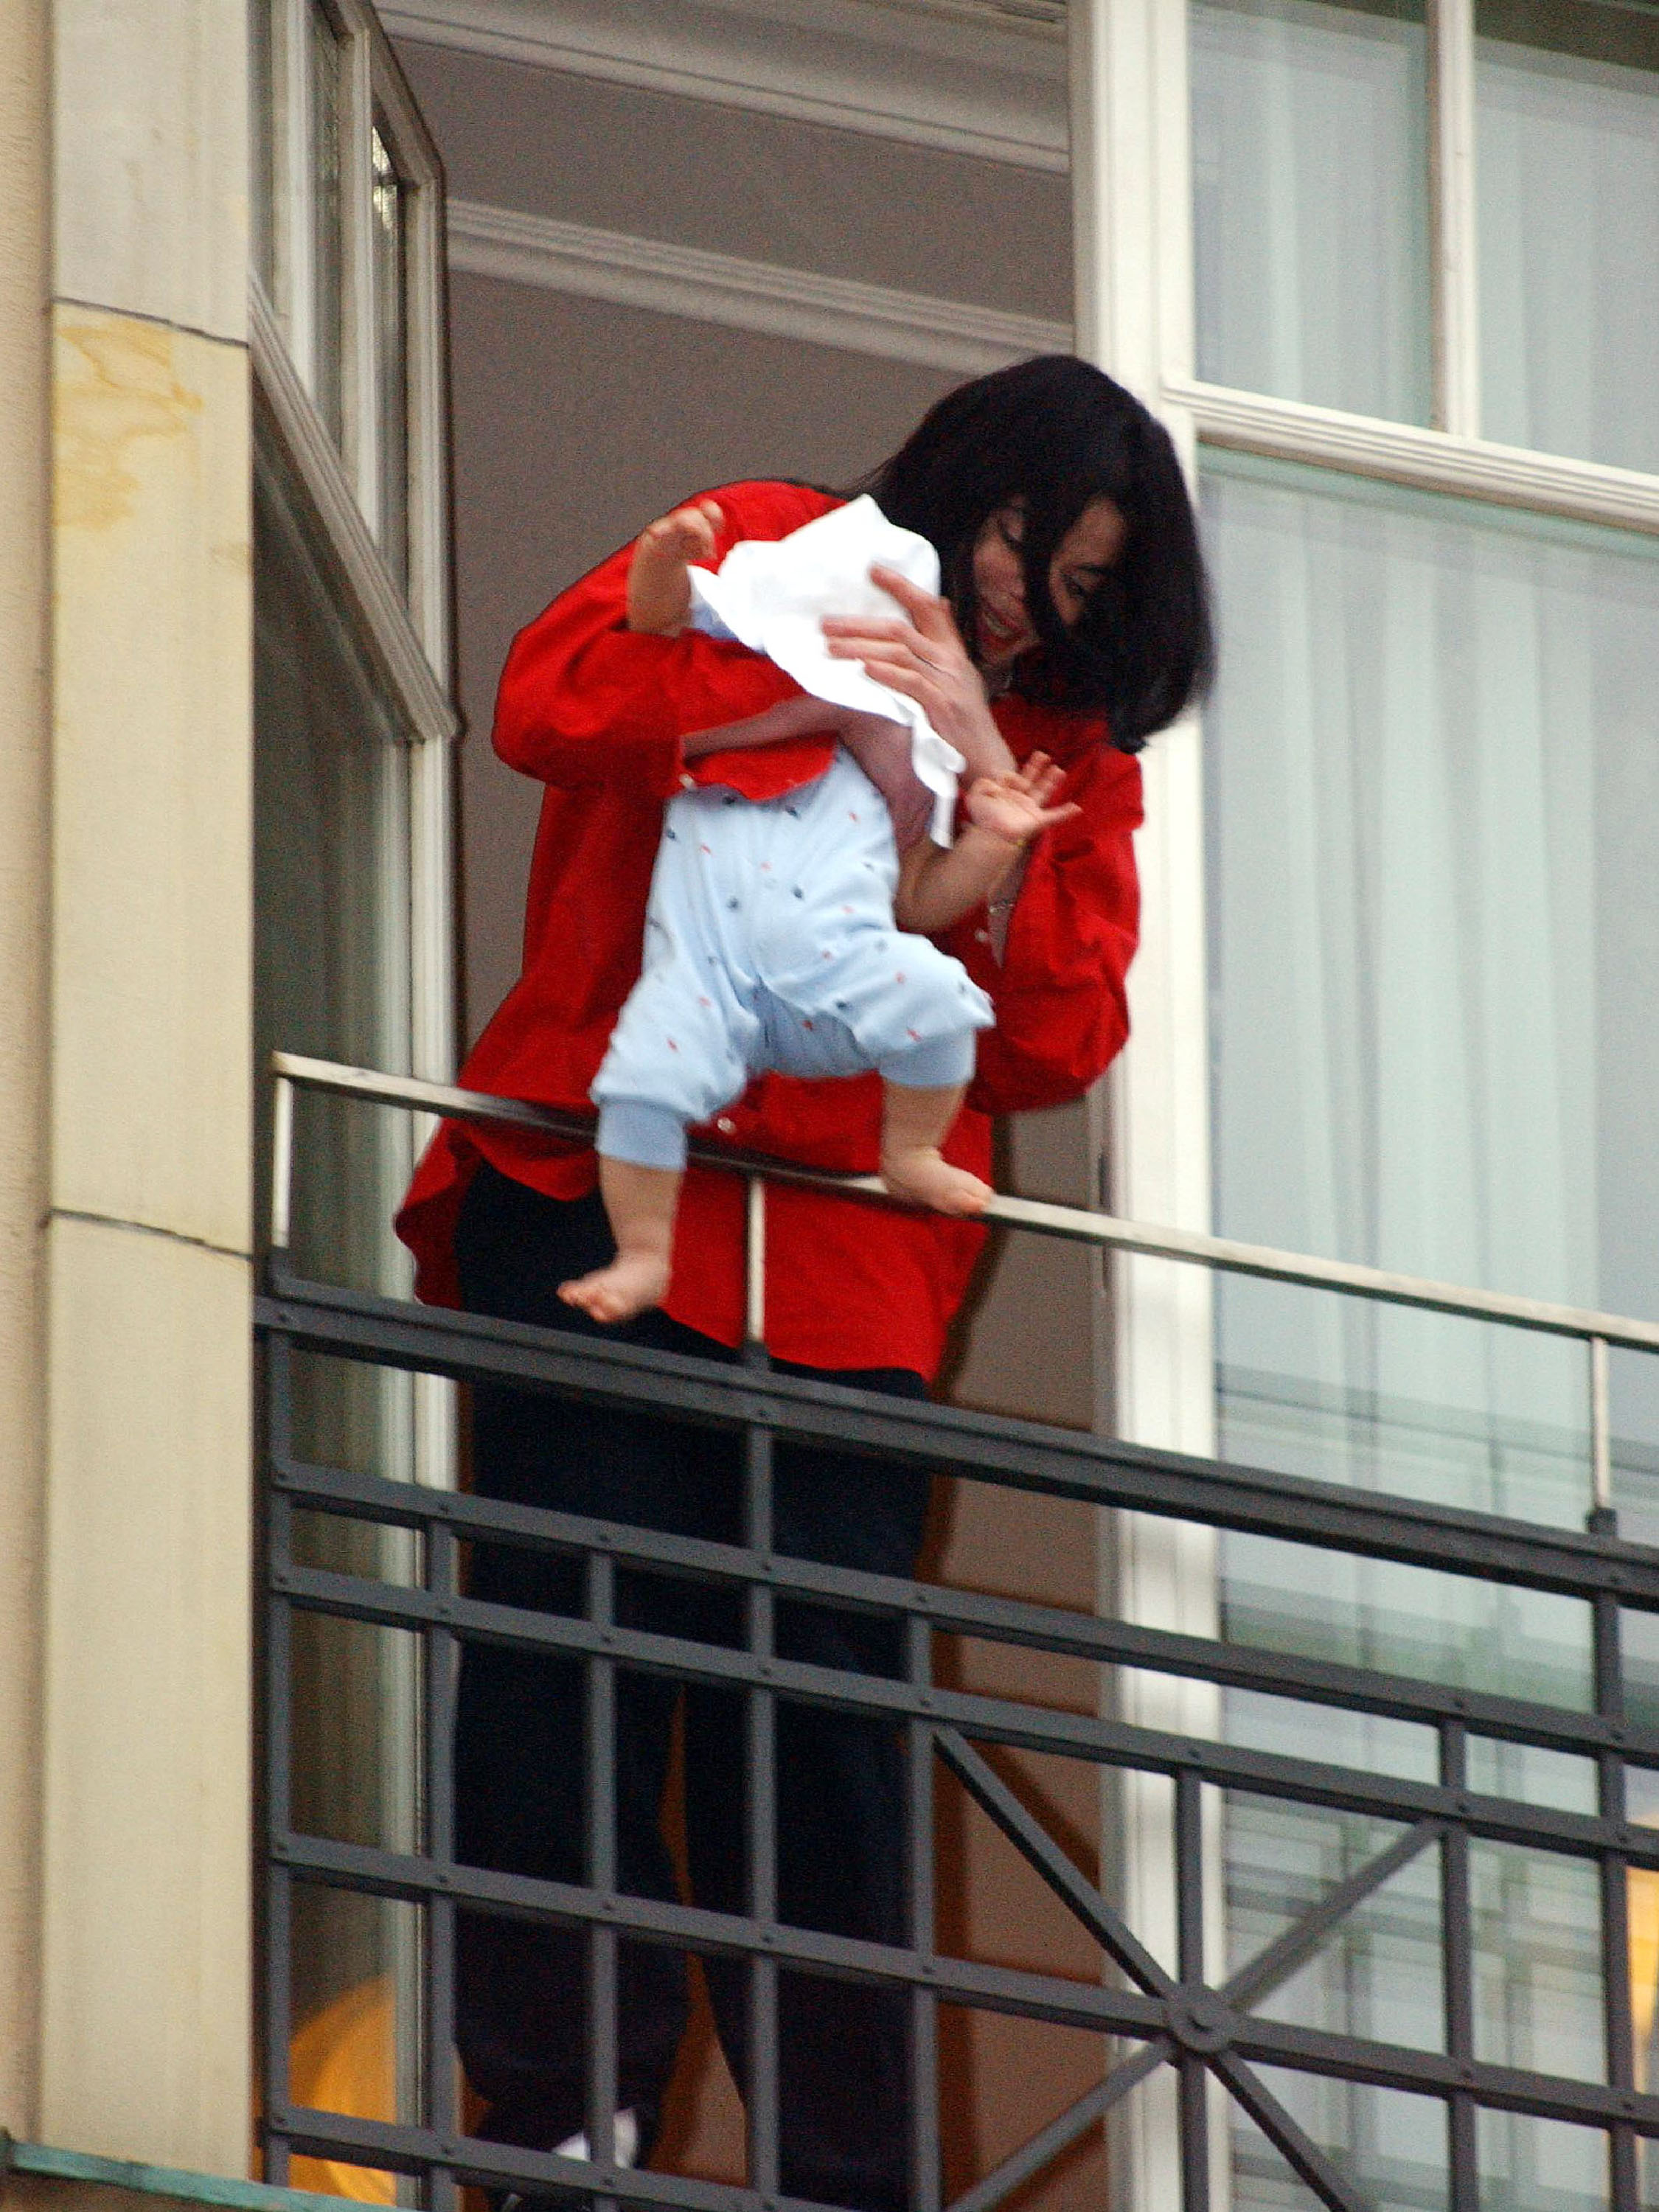 Singer Michael Jackson holds his eight-month-old son Prince Michael II over the balcony of the Adlon Hotel November 19, 2002, in Berlin, Germany. Jackson took full responsibility for both Prince and Paris (Source: Olaf Selchow/Getty Images)